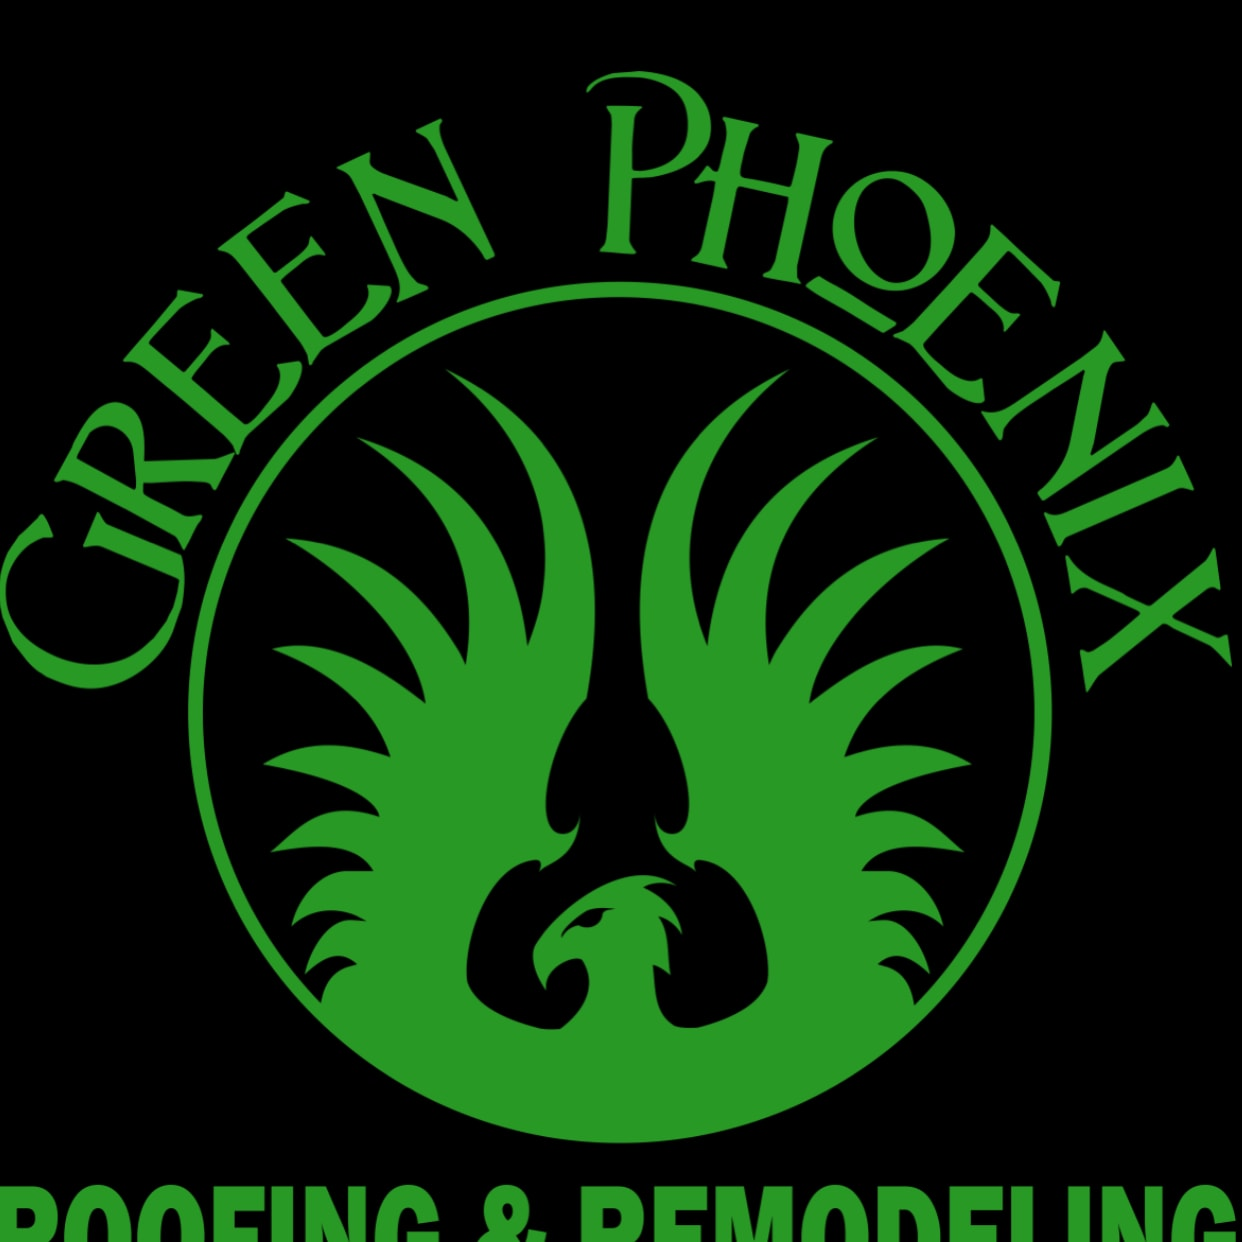 Green Phoenix Roofing & Remodeling